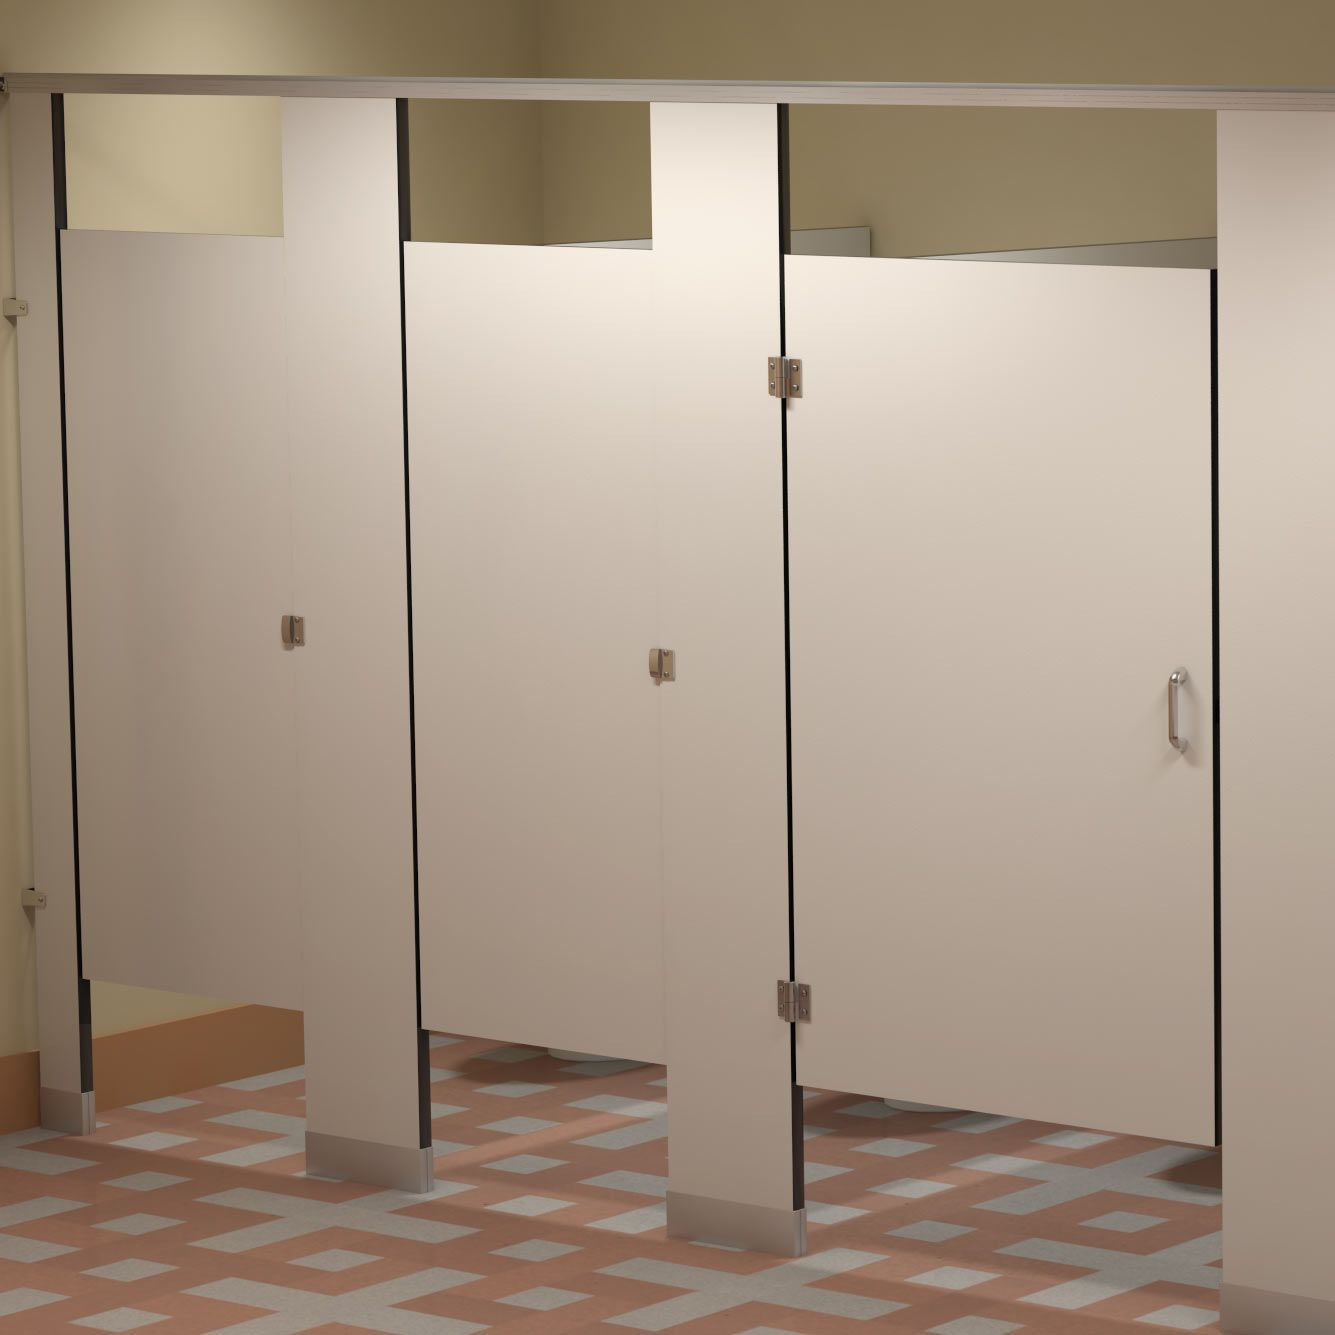 Phenolic Bathroom Partitions Exterior Plastic & Phenolic Partitions Cubicles  Toilet Partitions .